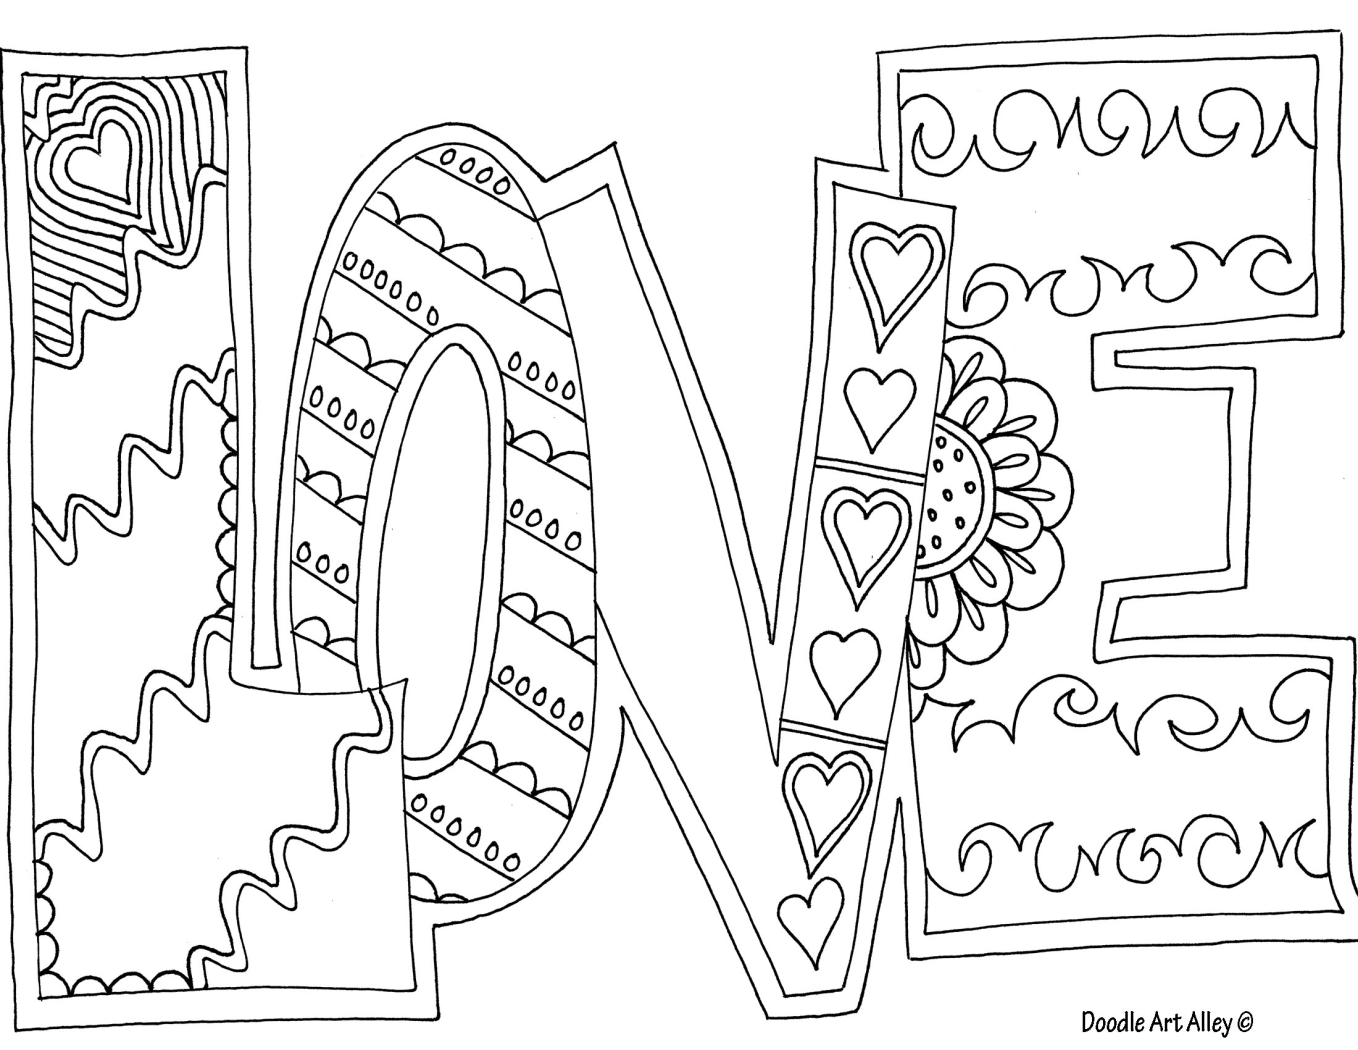 Love Adult Coloring Page With Images Love Coloring Pages Quote Coloring Pages Coloring Pages